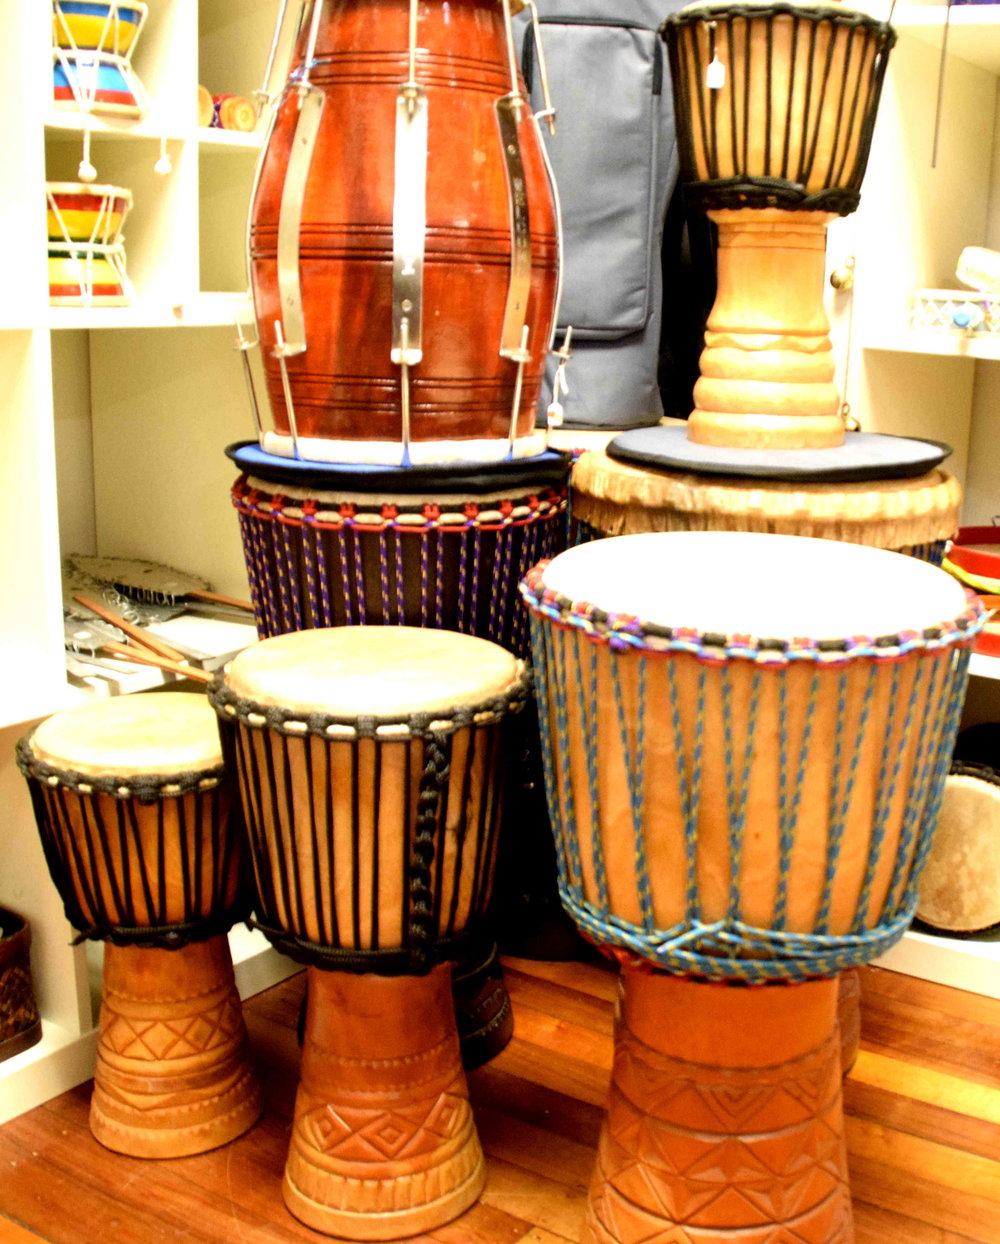 Congas and Bongos from Cuba; Damroo and Dhol from India; Darbuka, Dahola, Doumbek and Djembe from Africa